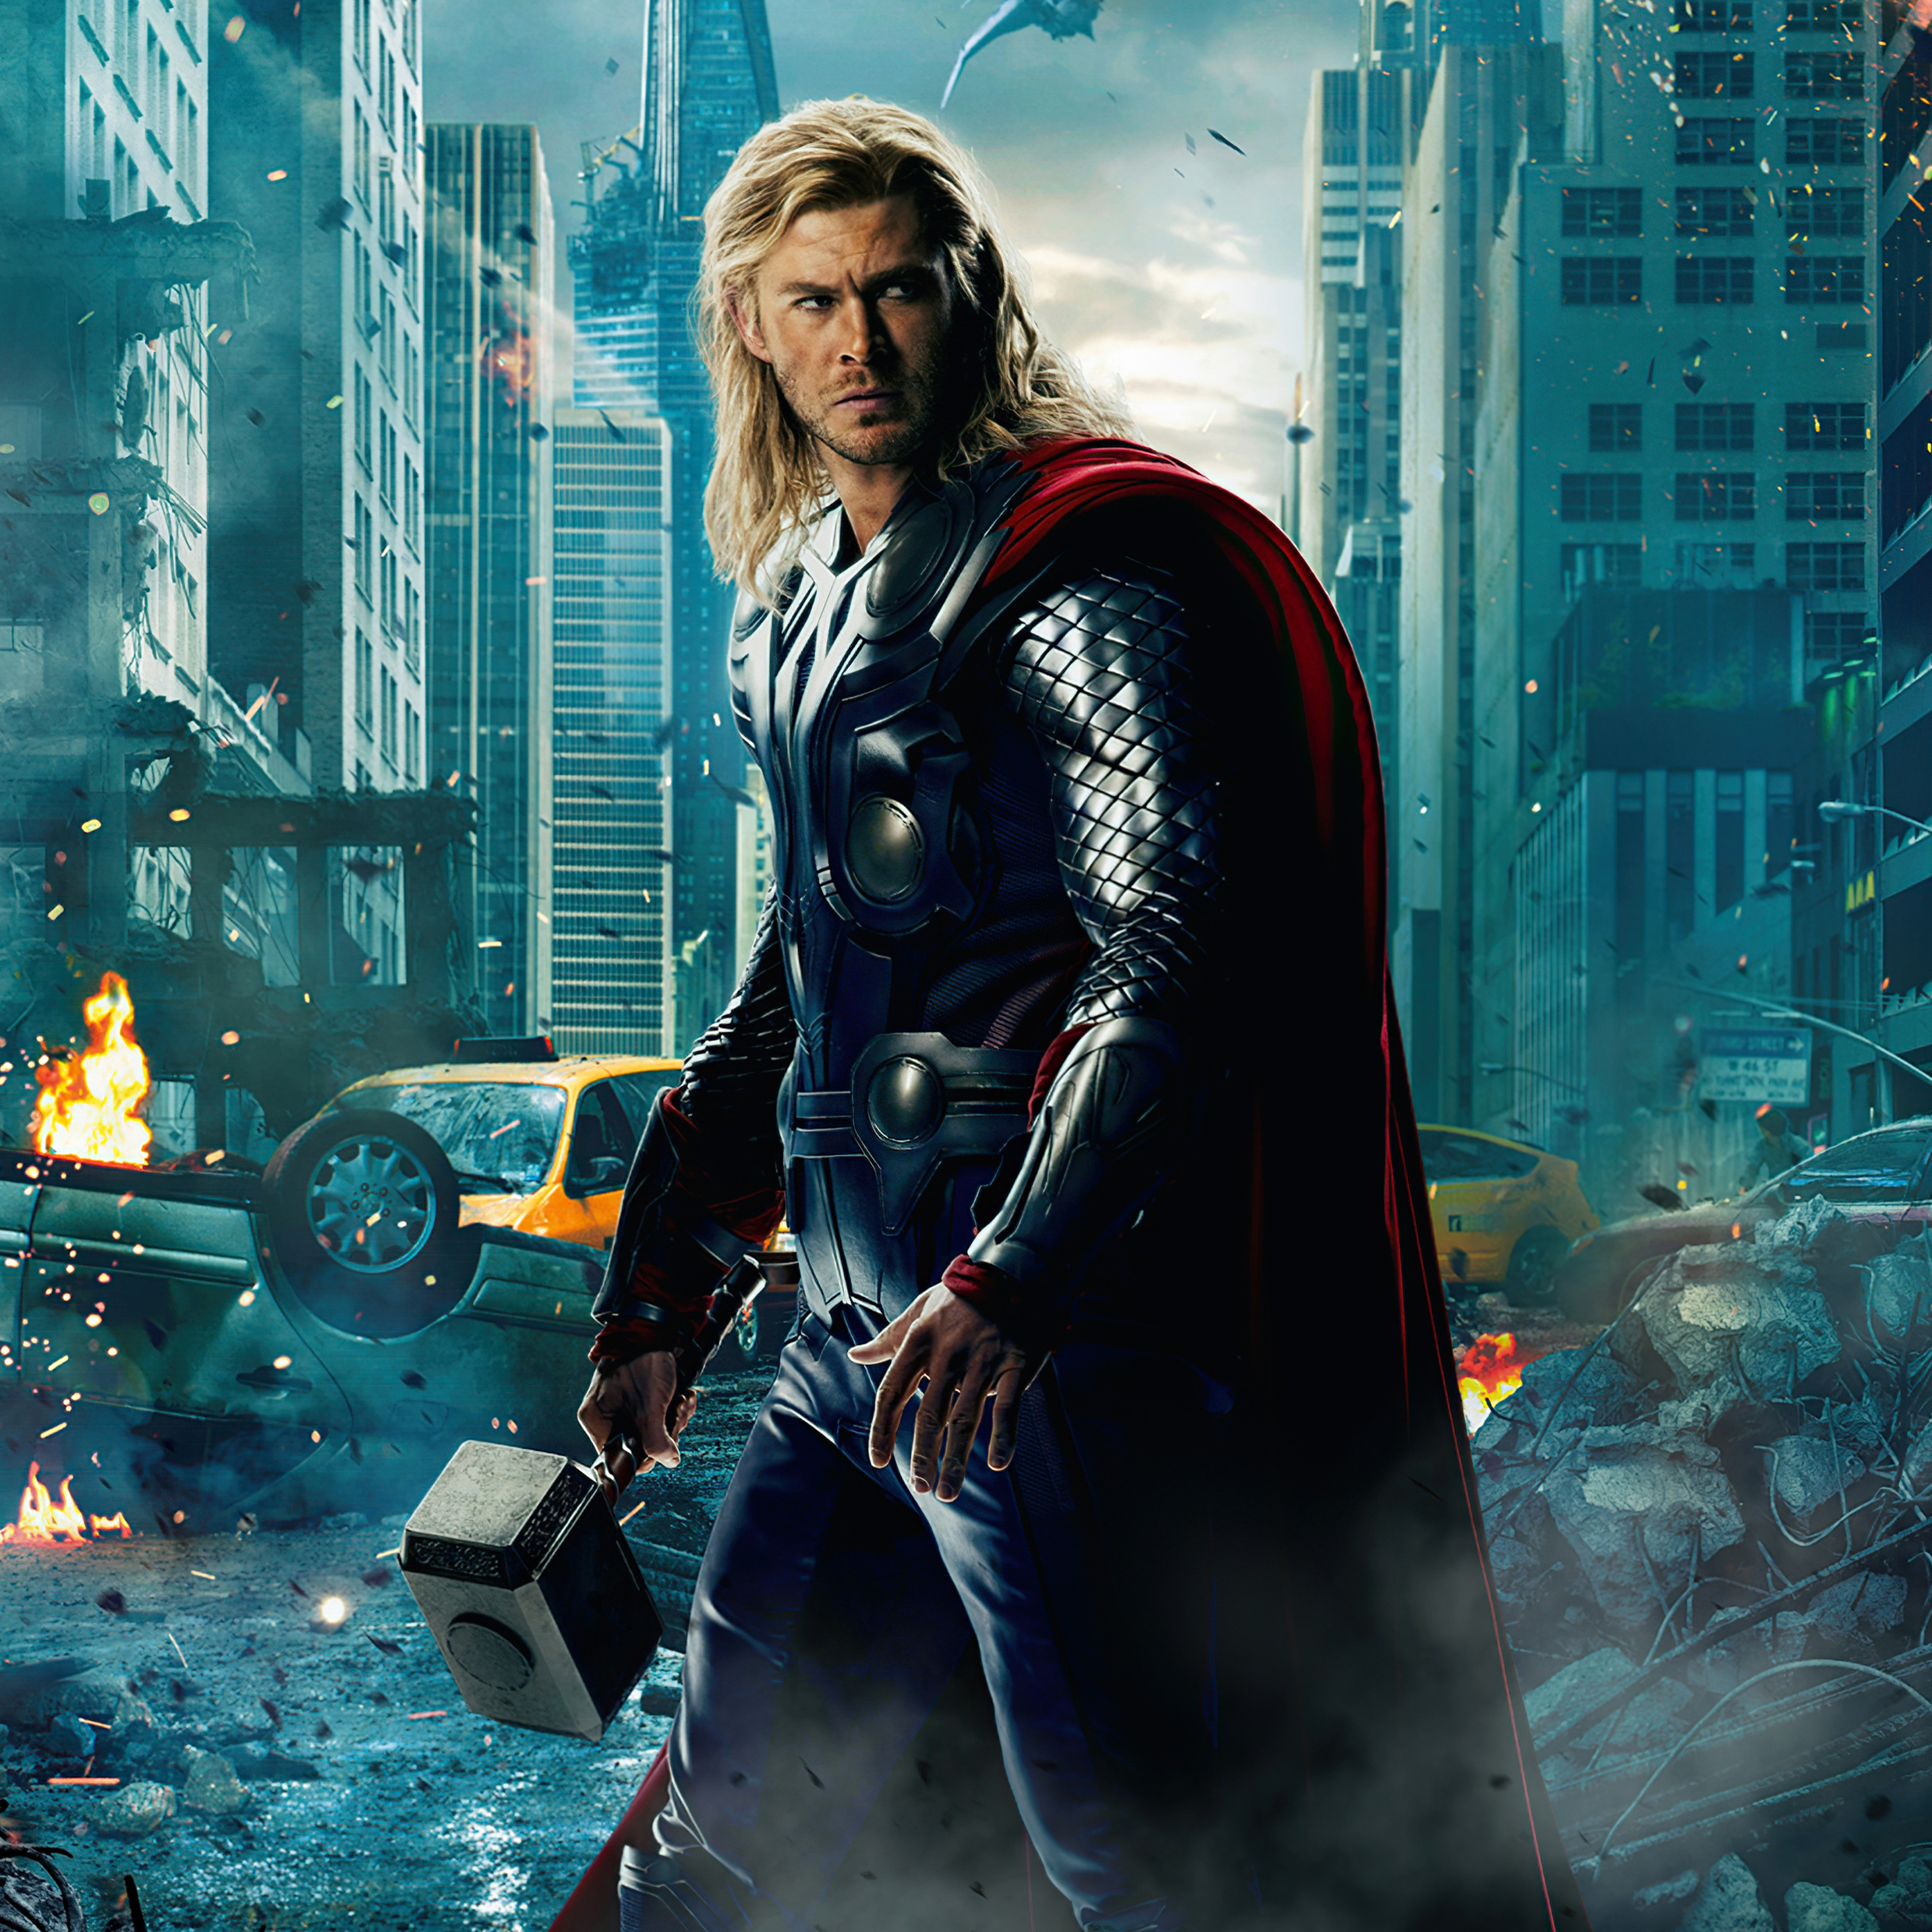 thor-in-avengers-age-of-ultron-5k-ck.jpg